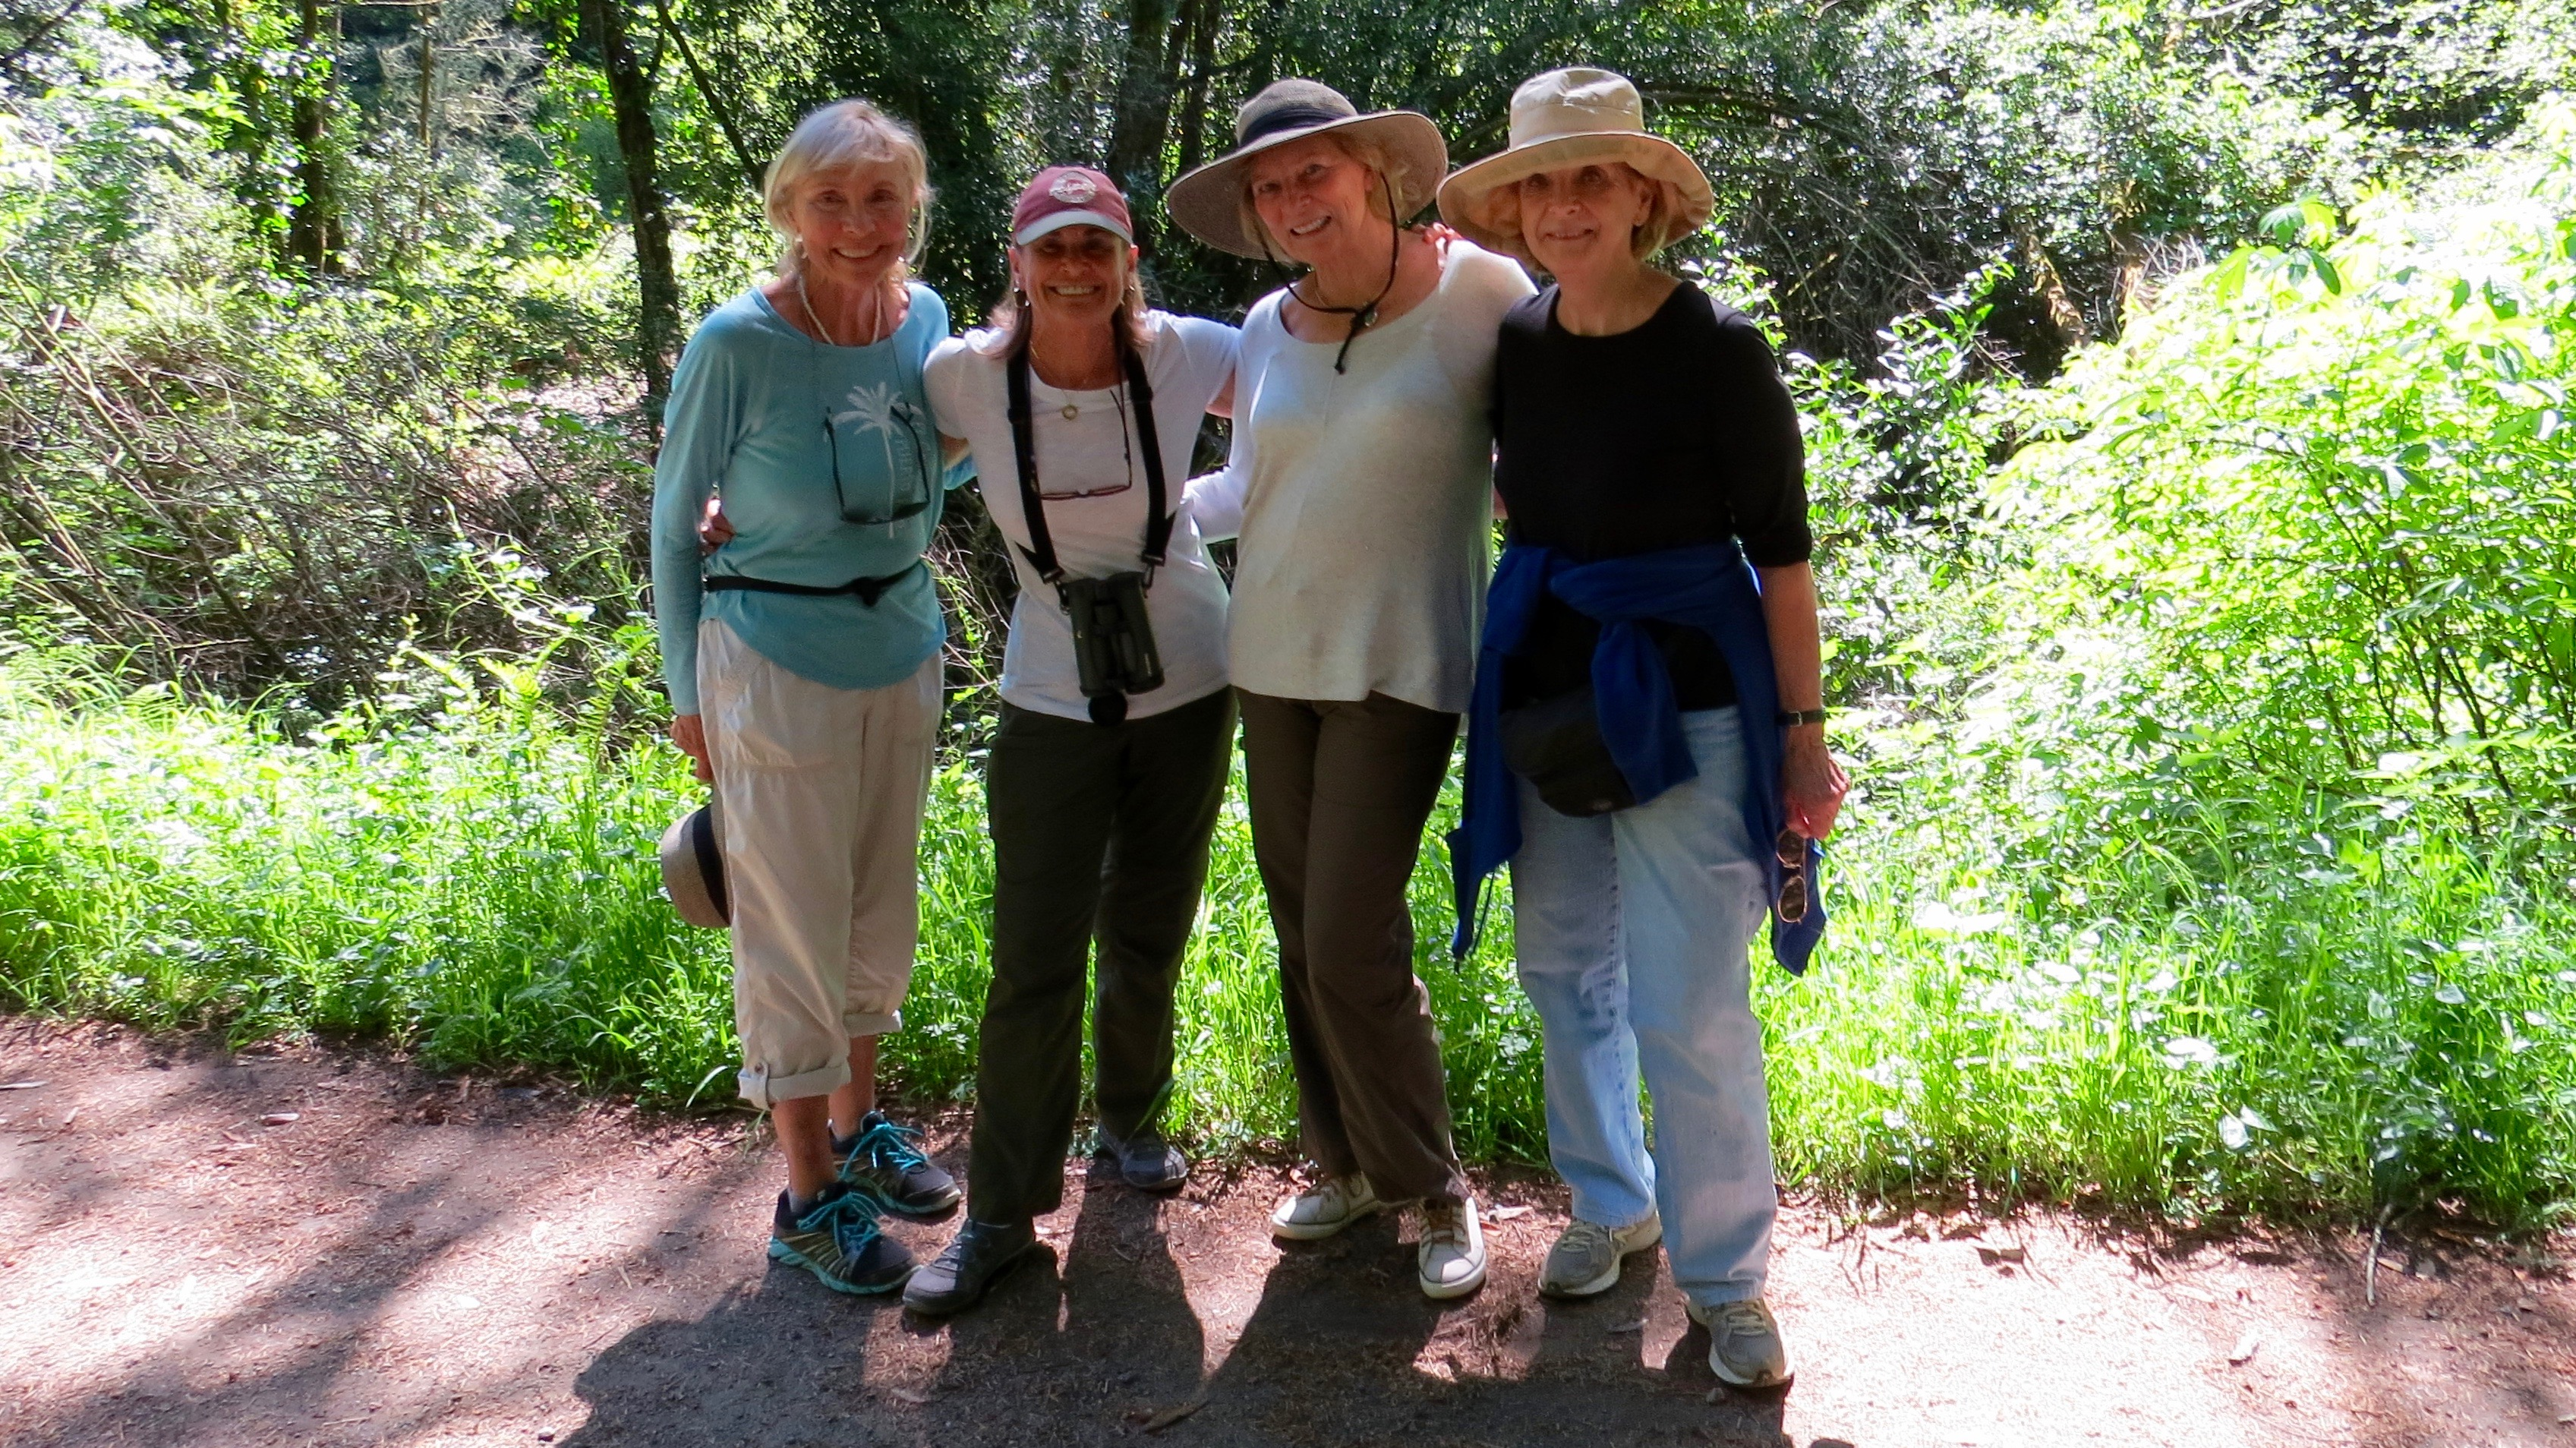 Enjoying a reunion with new friends, Rita, Bobbie and Susan (LtoR) before returning to Colorado. Bear Valley Trail. Point Reyes National Seashore.